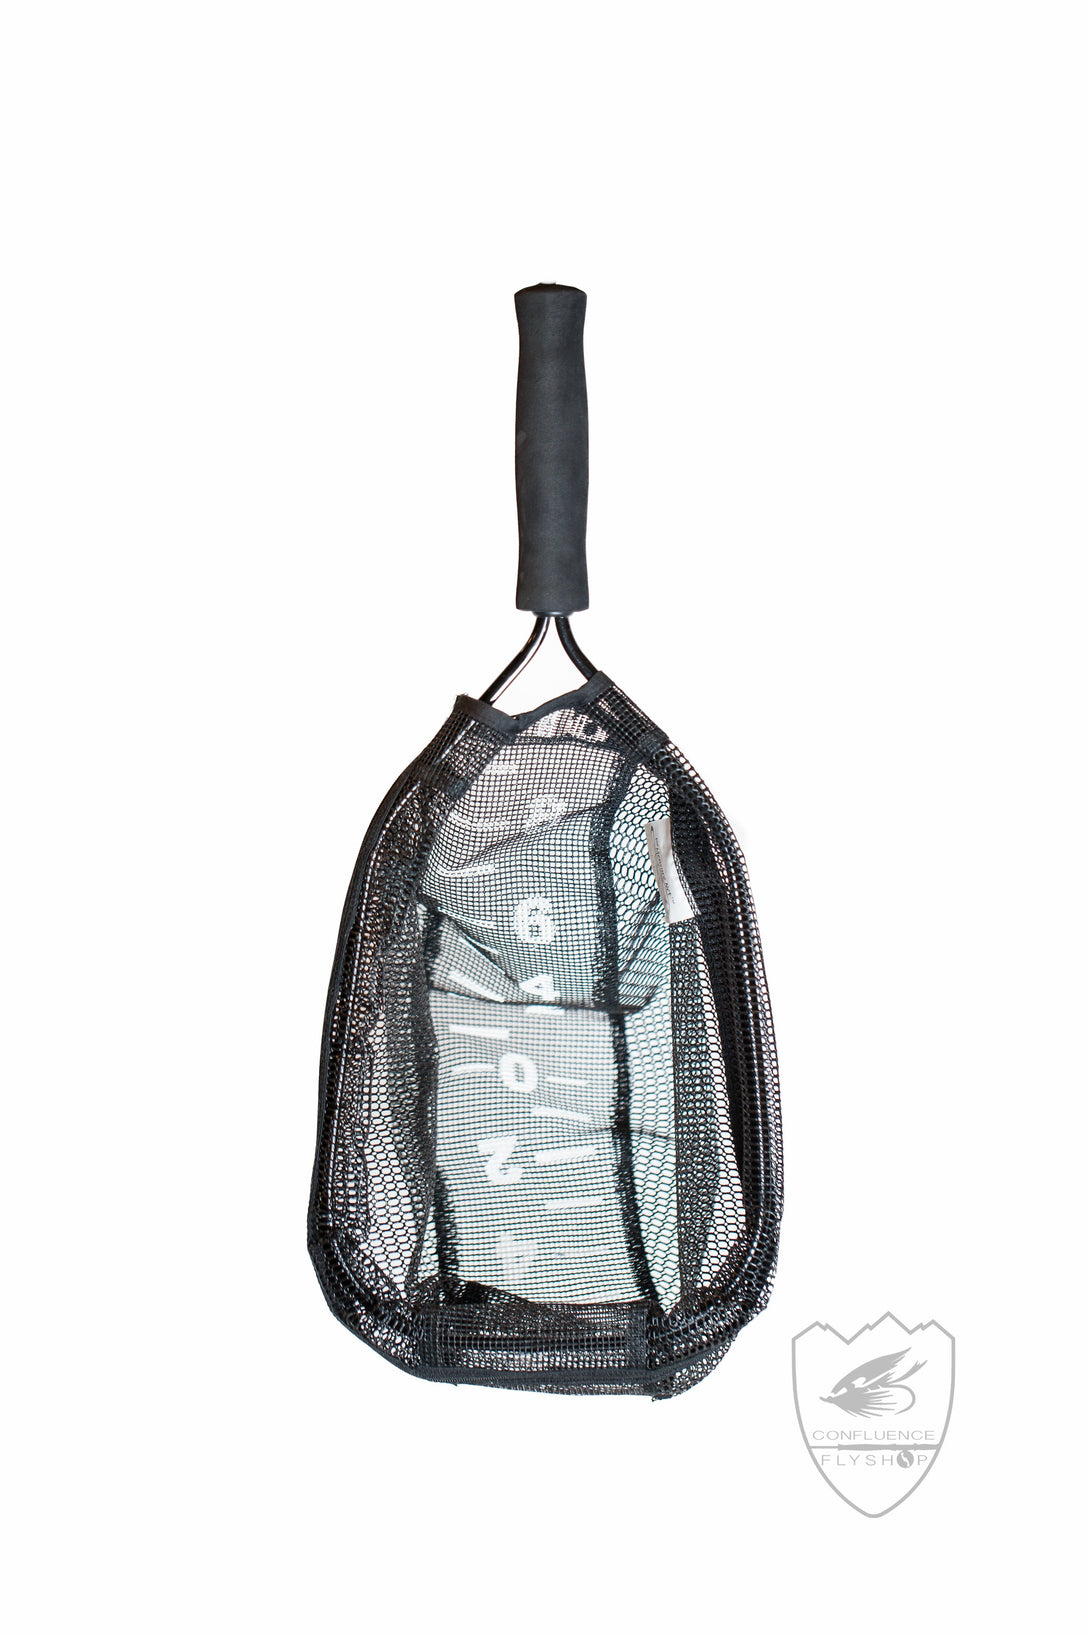 MEASURE NET,Net,Confluence Fly Shop-Confluence Fly Shop